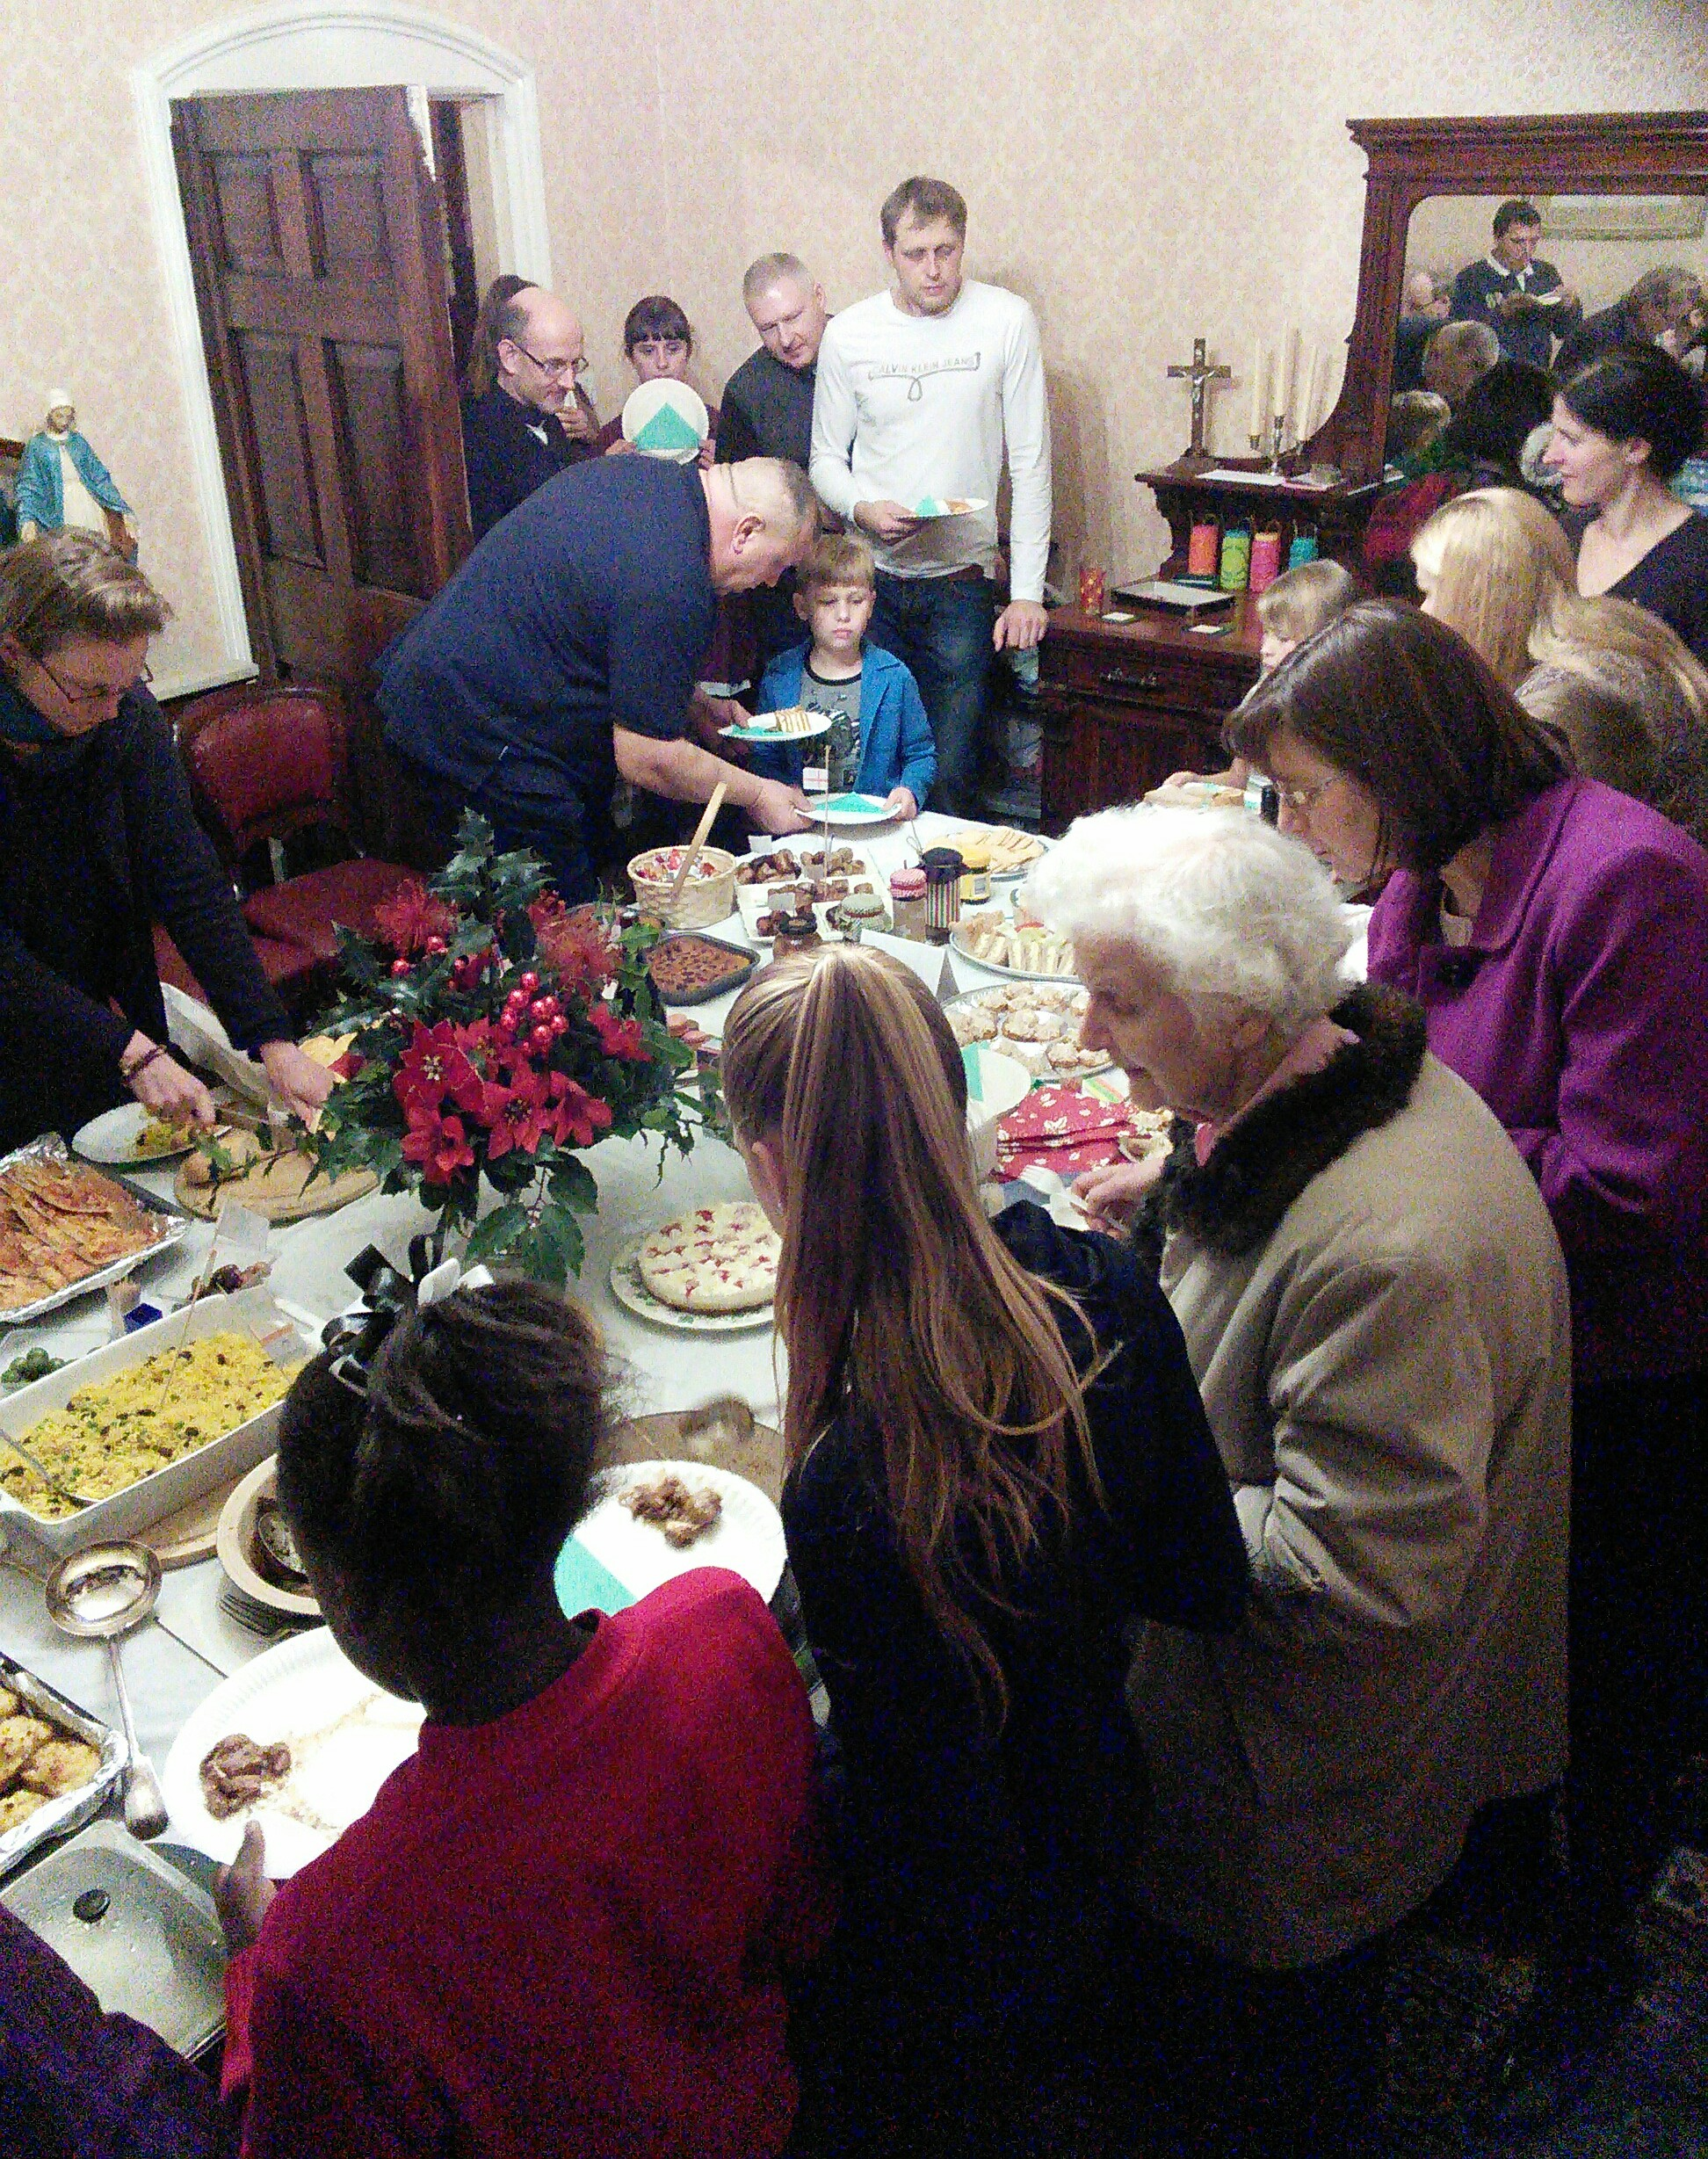 Gathering together people from every nation at our annual Meal of All Nations at Christmastime.